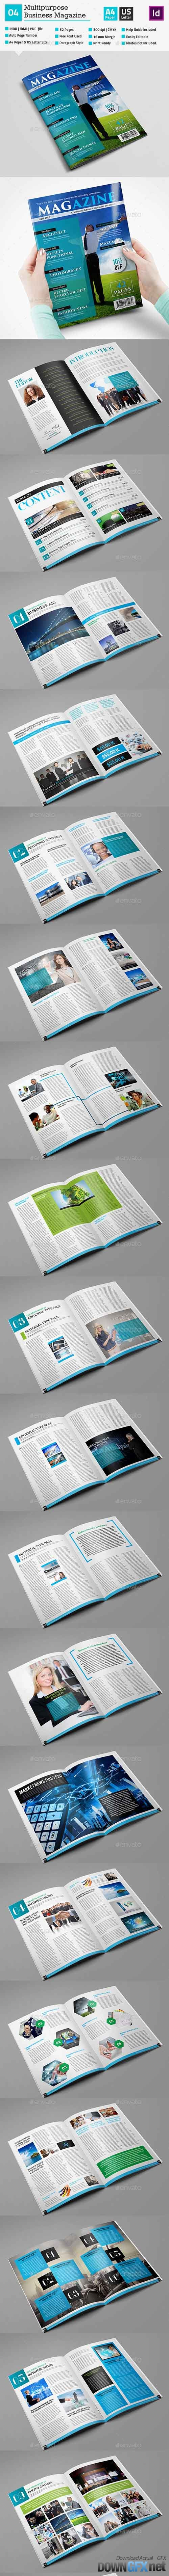 Multipurpose Magazine Template_Indesign 52 Page_V4 10823679